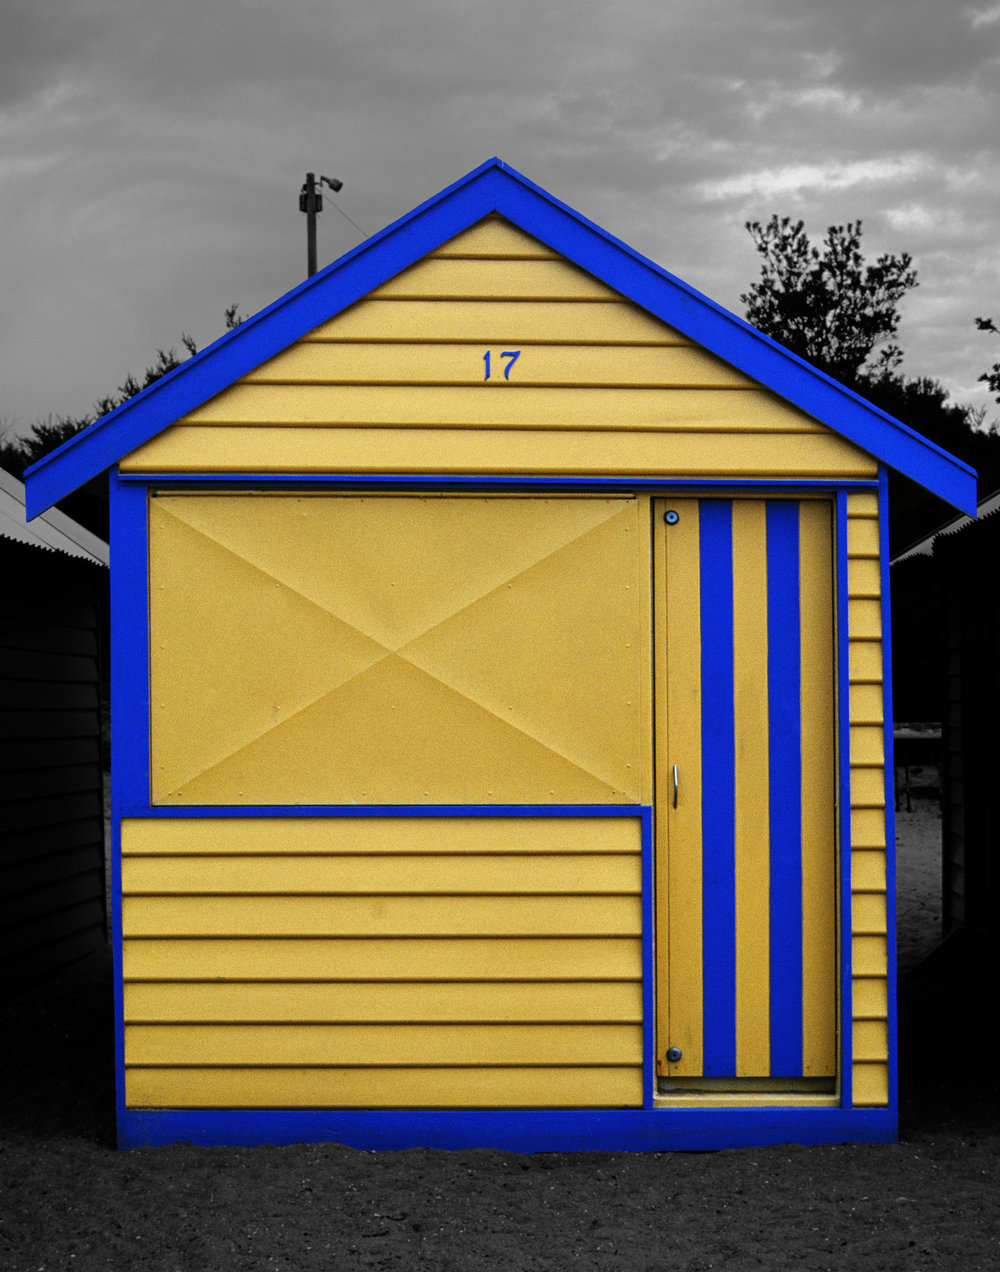 Judy Gelles,  Beach Box No. 17 , 2003  Digital pigment print, 8 x 10 in, edition of 20; 11 x 14 in, edition of 25; 16 x 20 in, edition of 25   Inquire